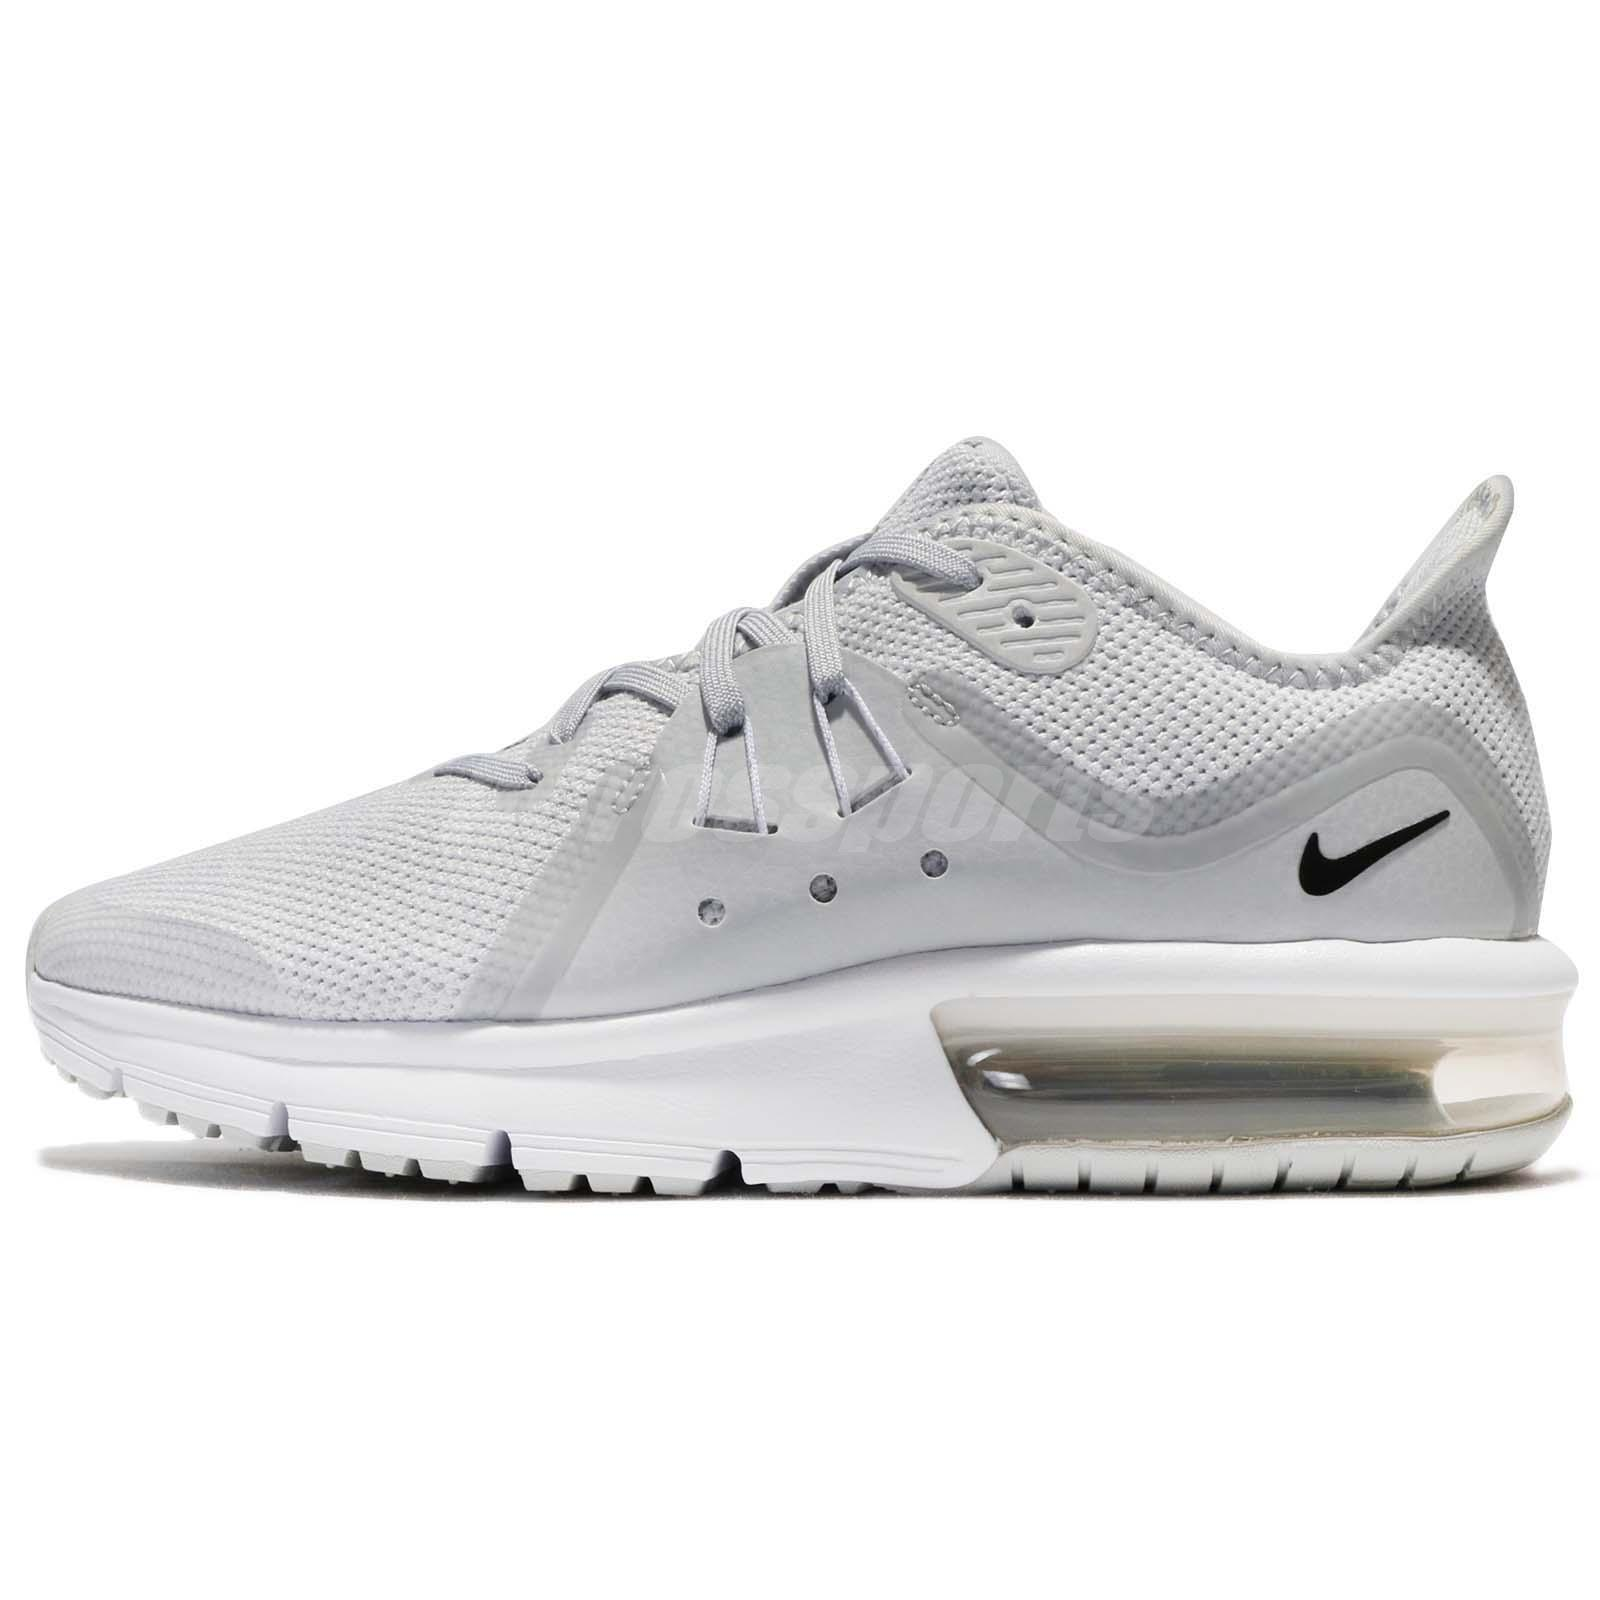 low priced 08b6e 507ef Nike Air Max Sequent 3 GS III Pure Platinum White Kids Women Running  922884-005